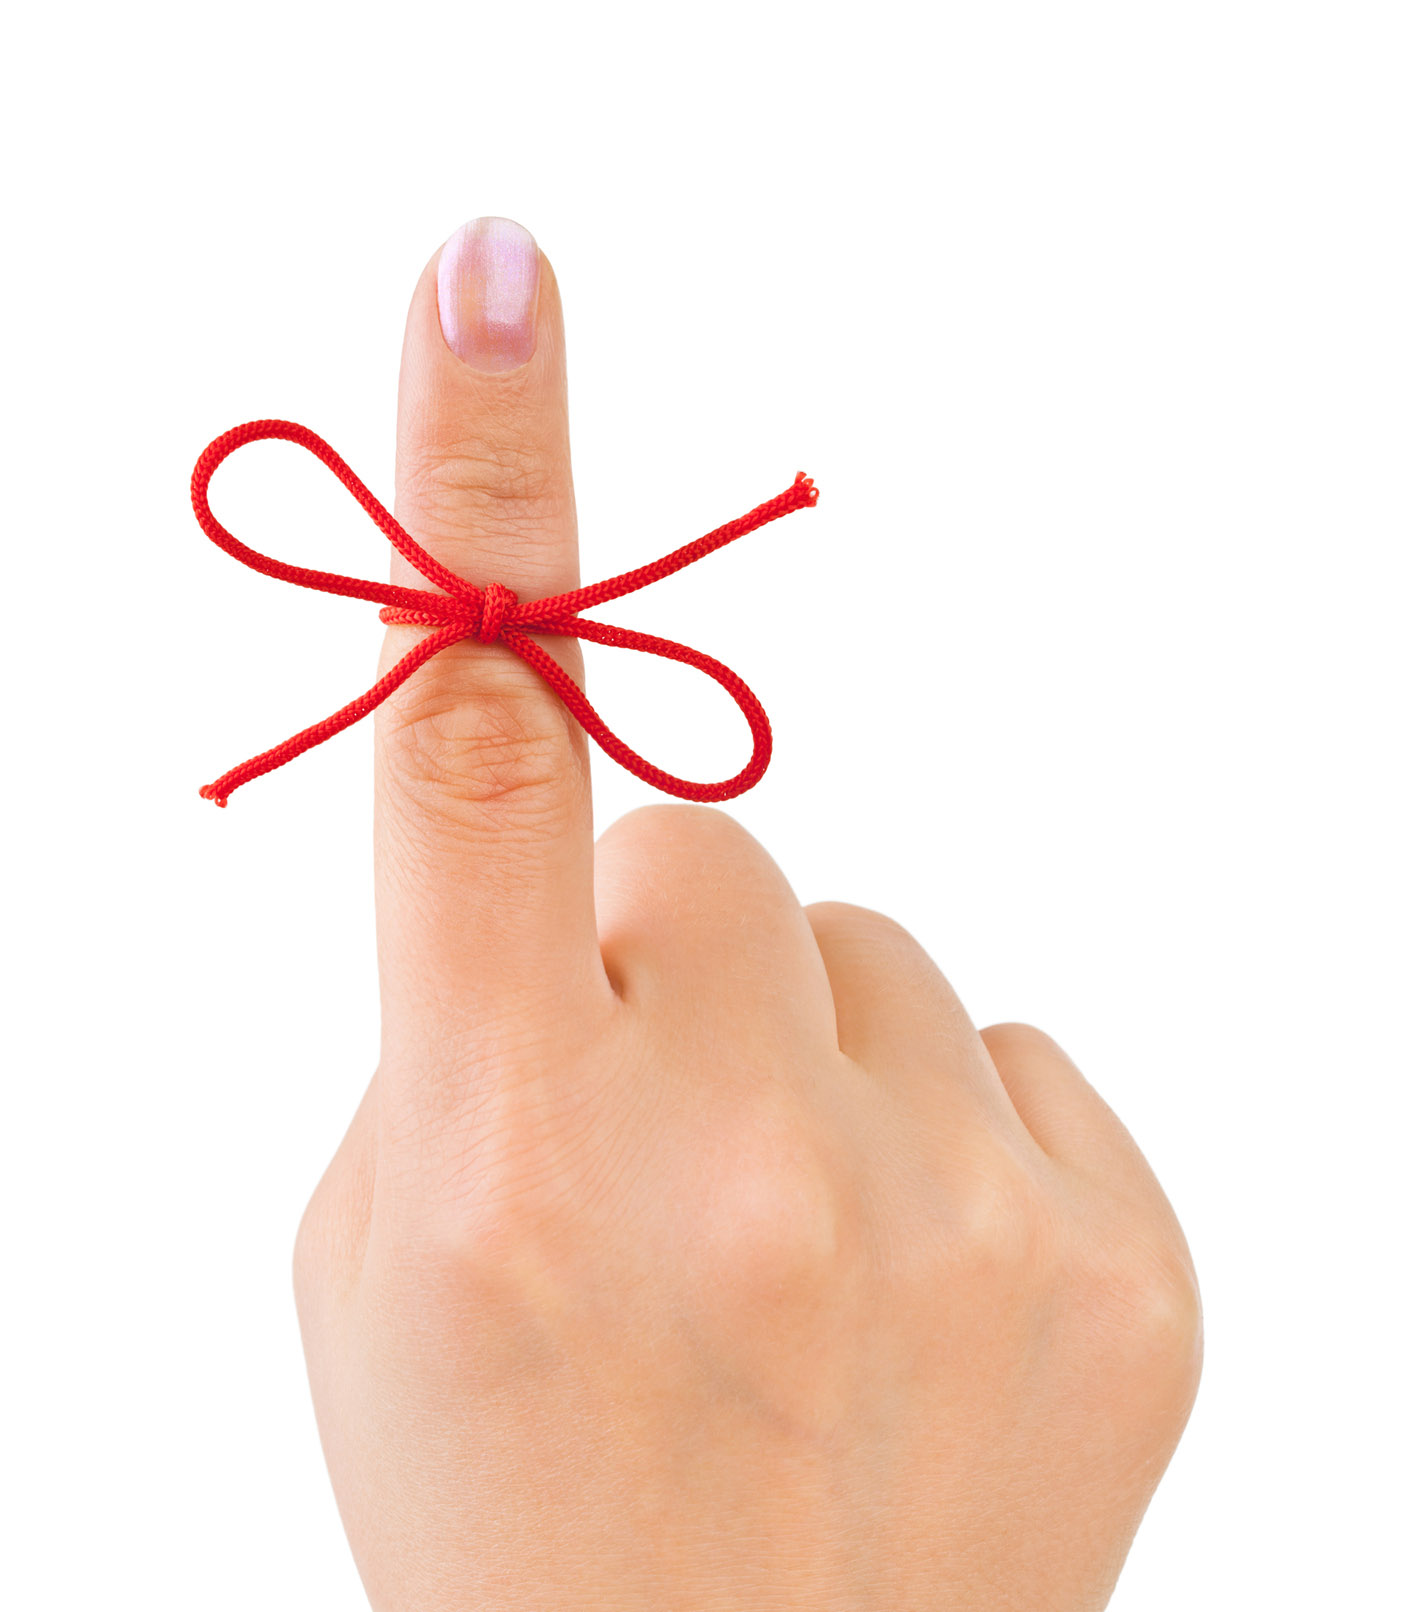 An index finger with a red string tied around it